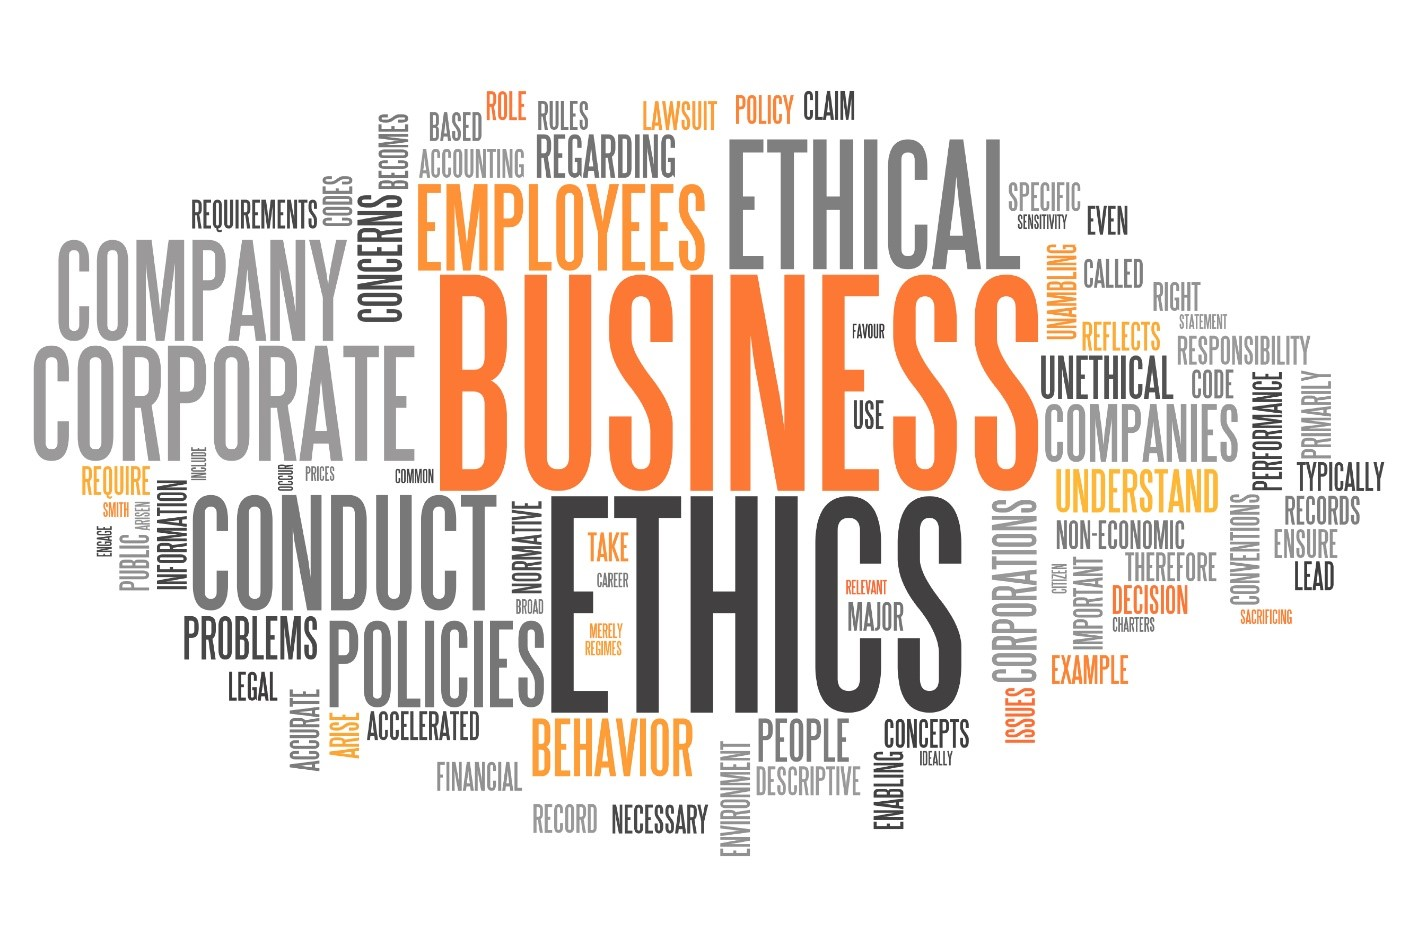 Bussiness ethics